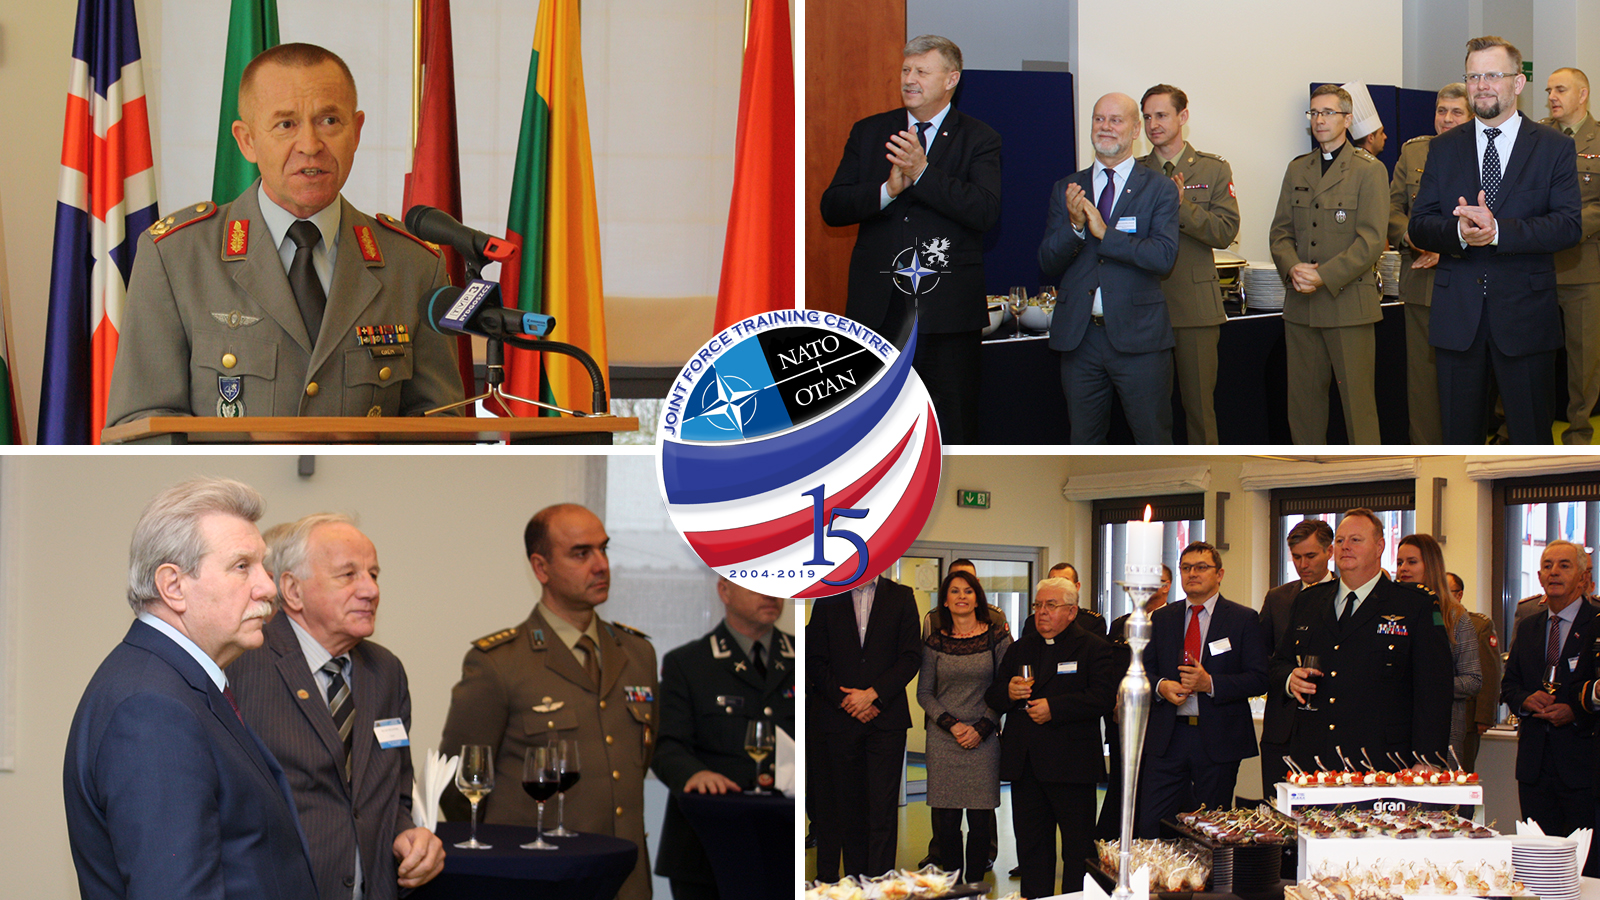 New Year's Reception opens another year of training at JFTC